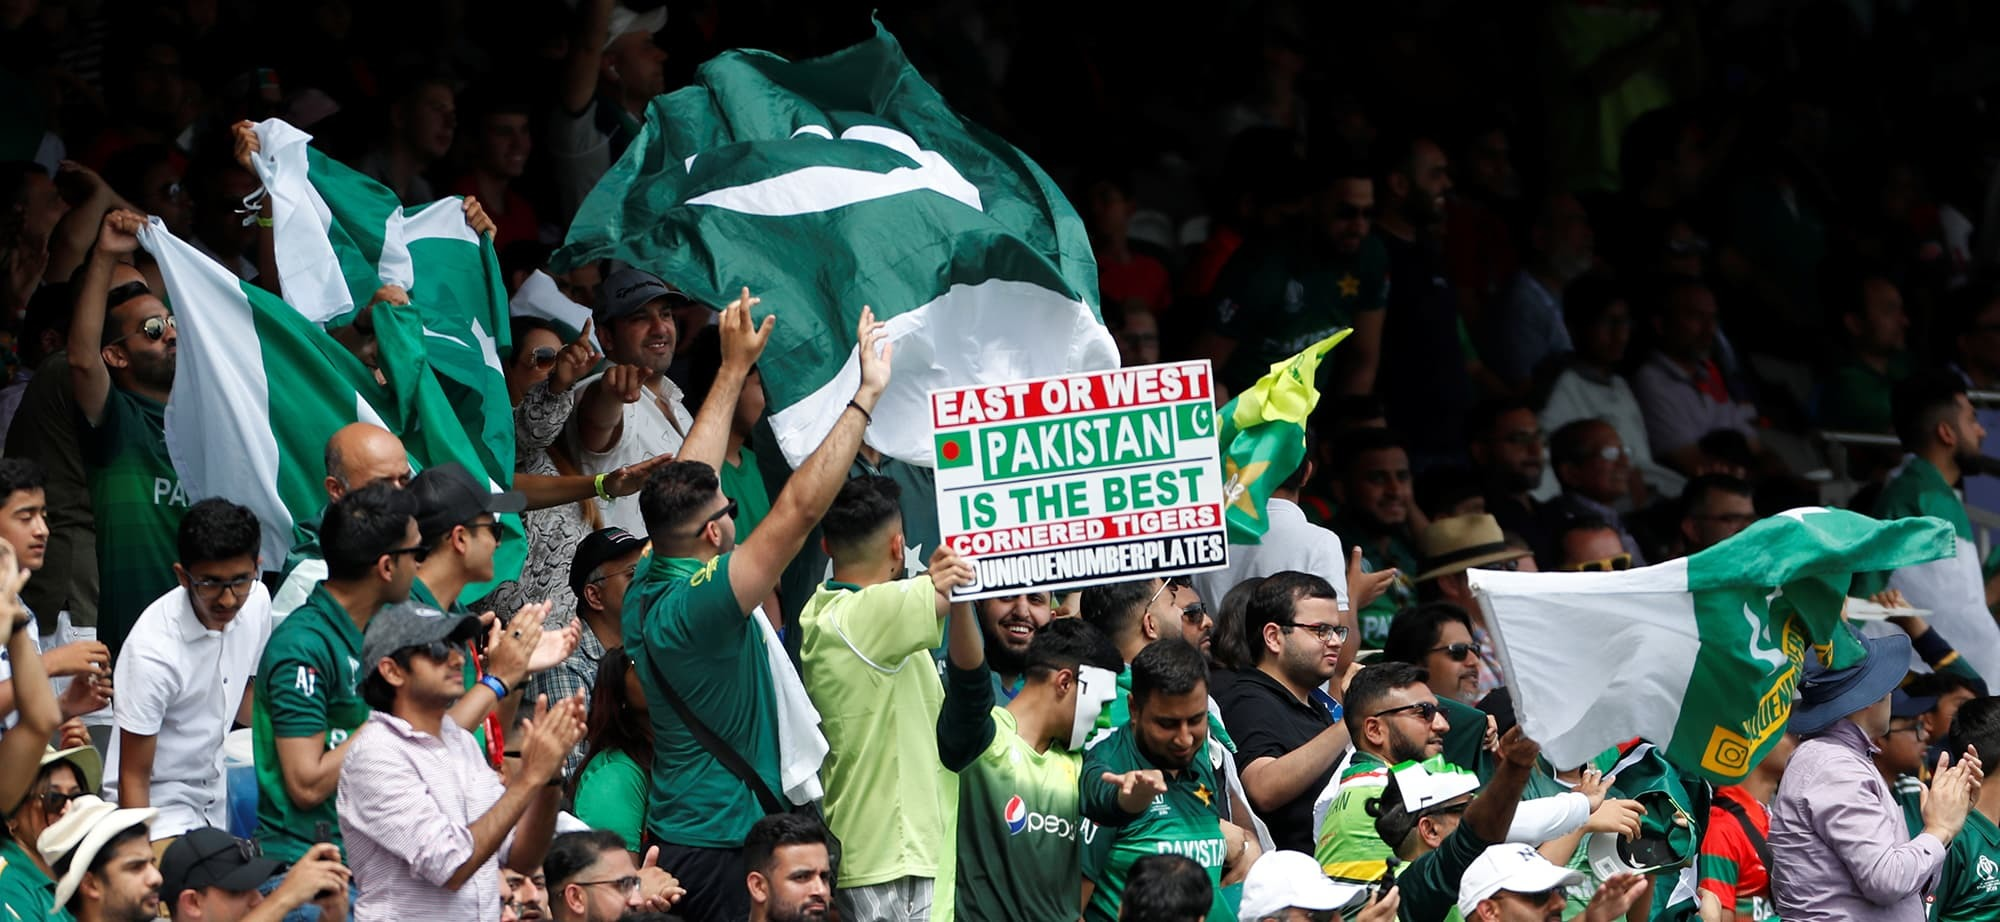 Cricket - ICC Cricket World Cup - Pakistan v Bangladesh - Lord's, London, Britain - July 5, 2019   Pakistan fans during the match   Action Images via Reuters/Paul Childs